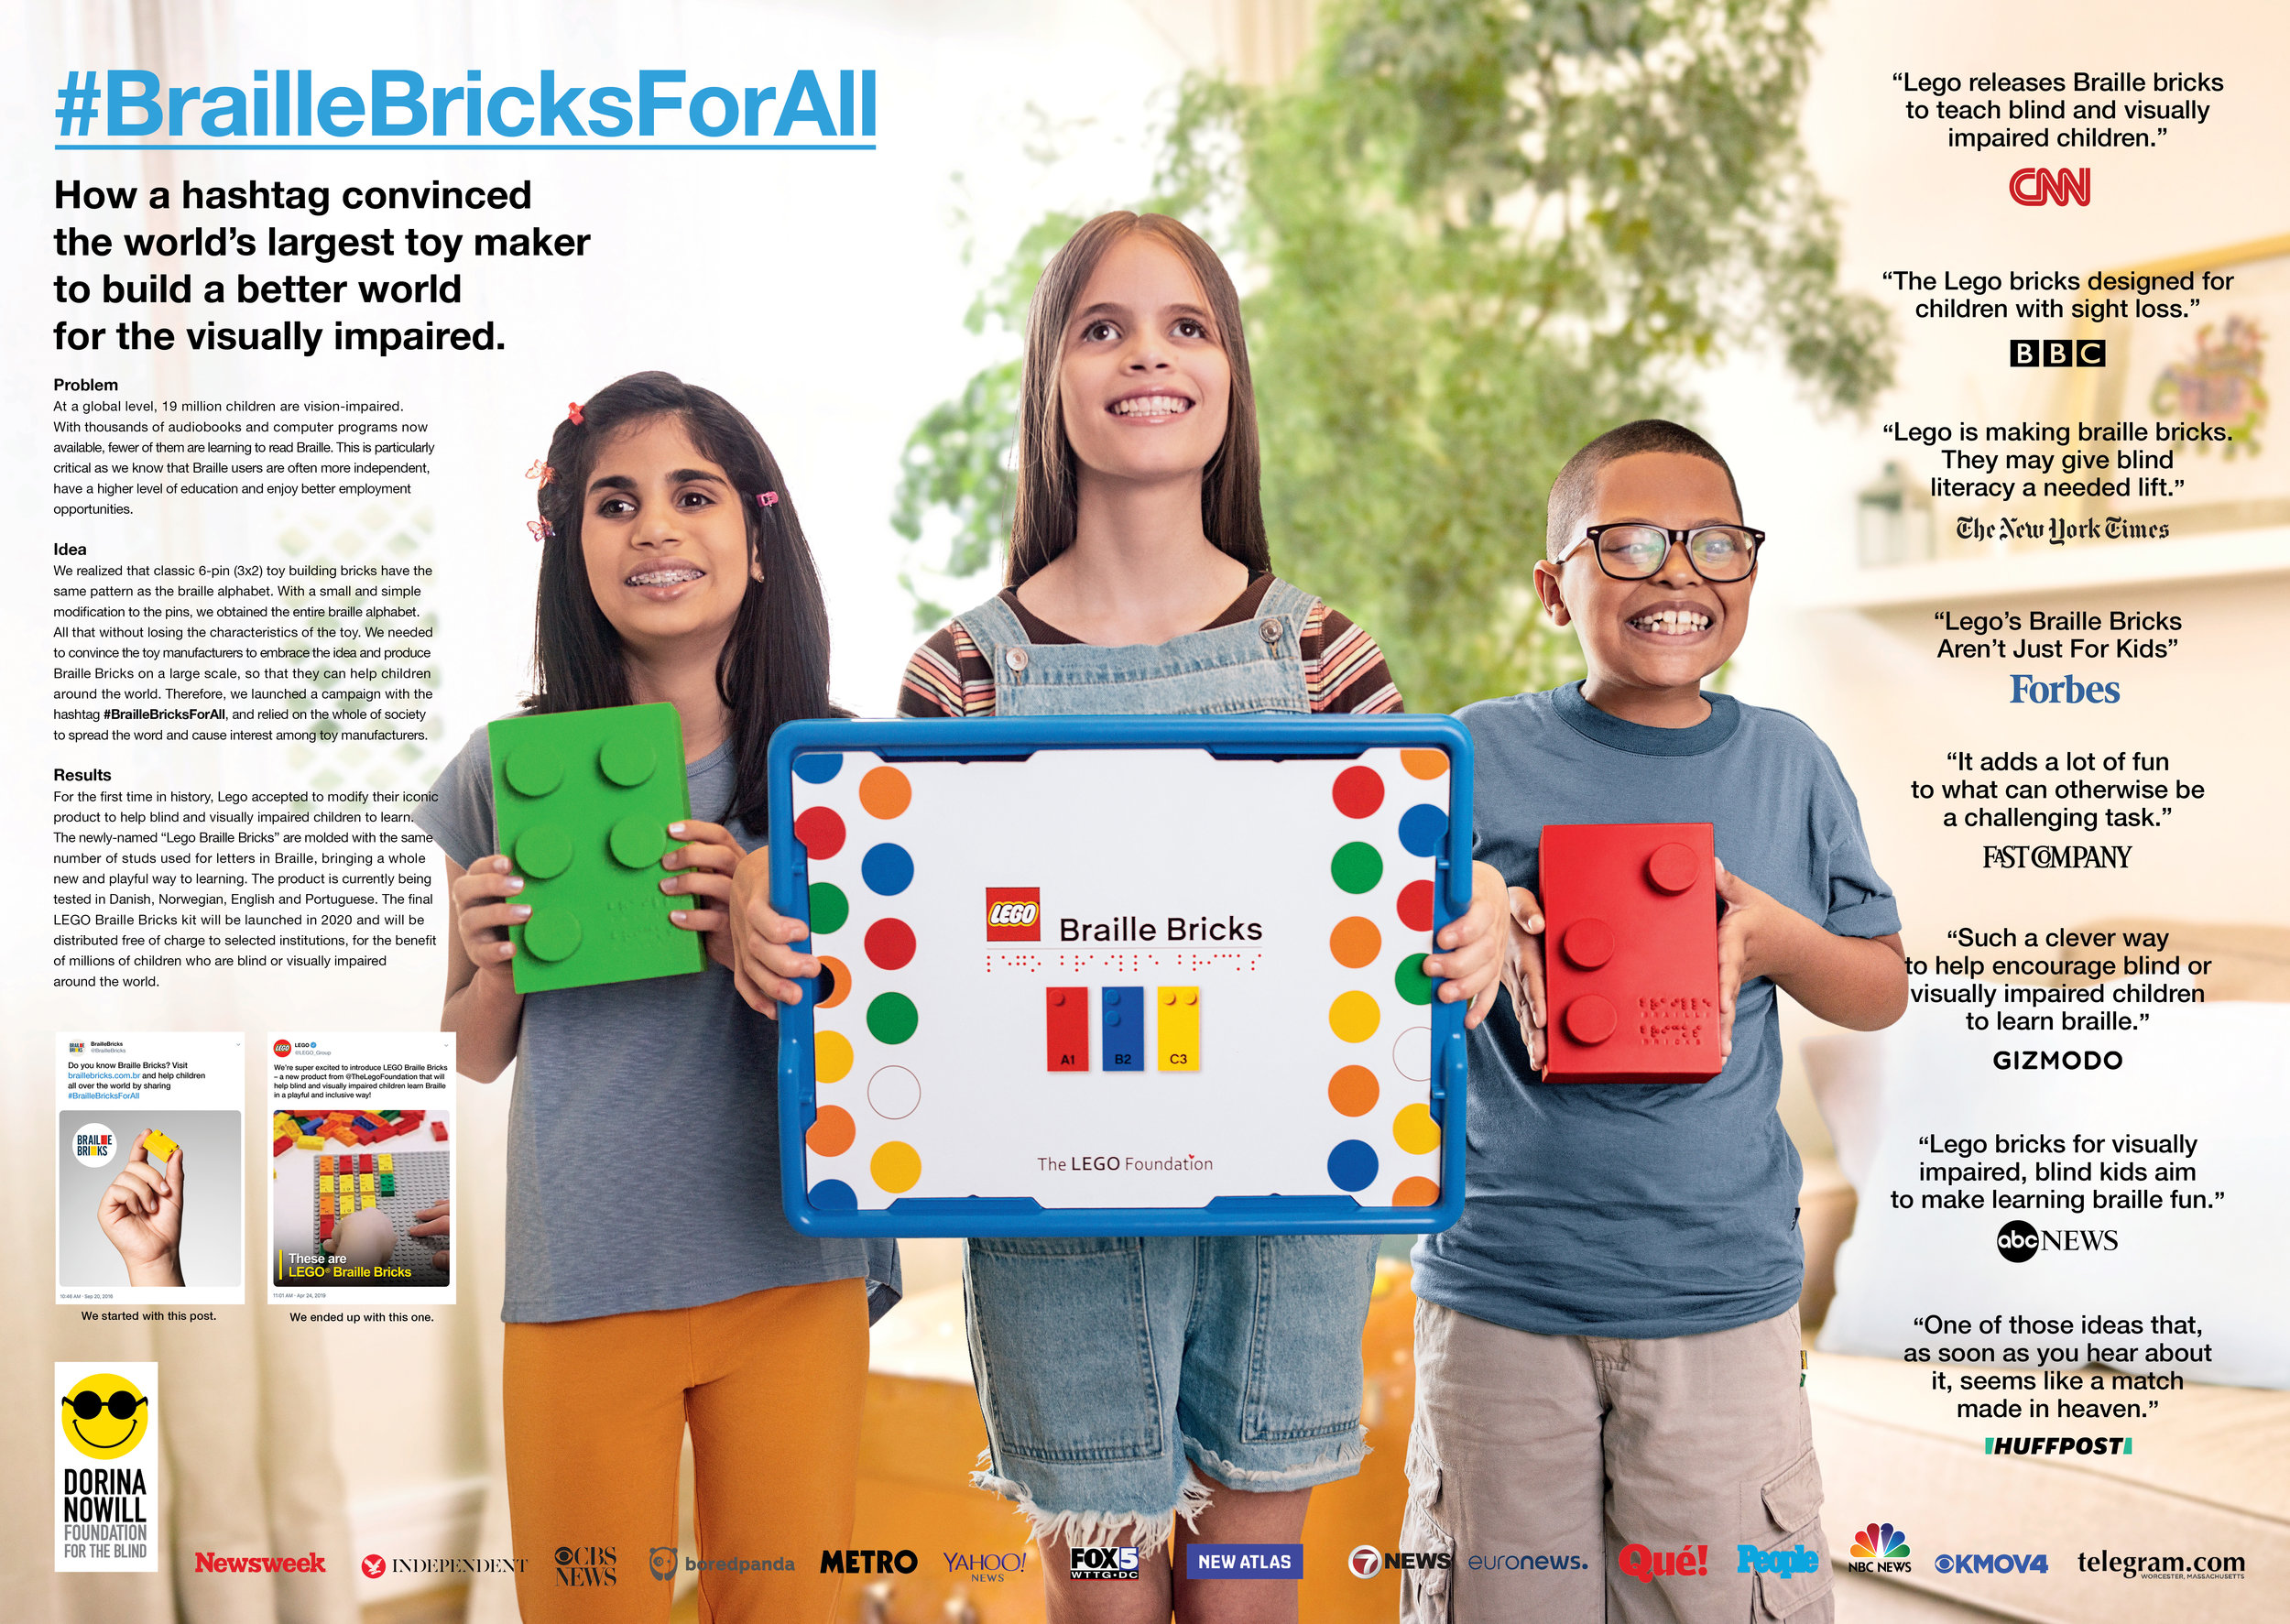 BRAILLEBRICKSFORALL_INNOVATION.jpg